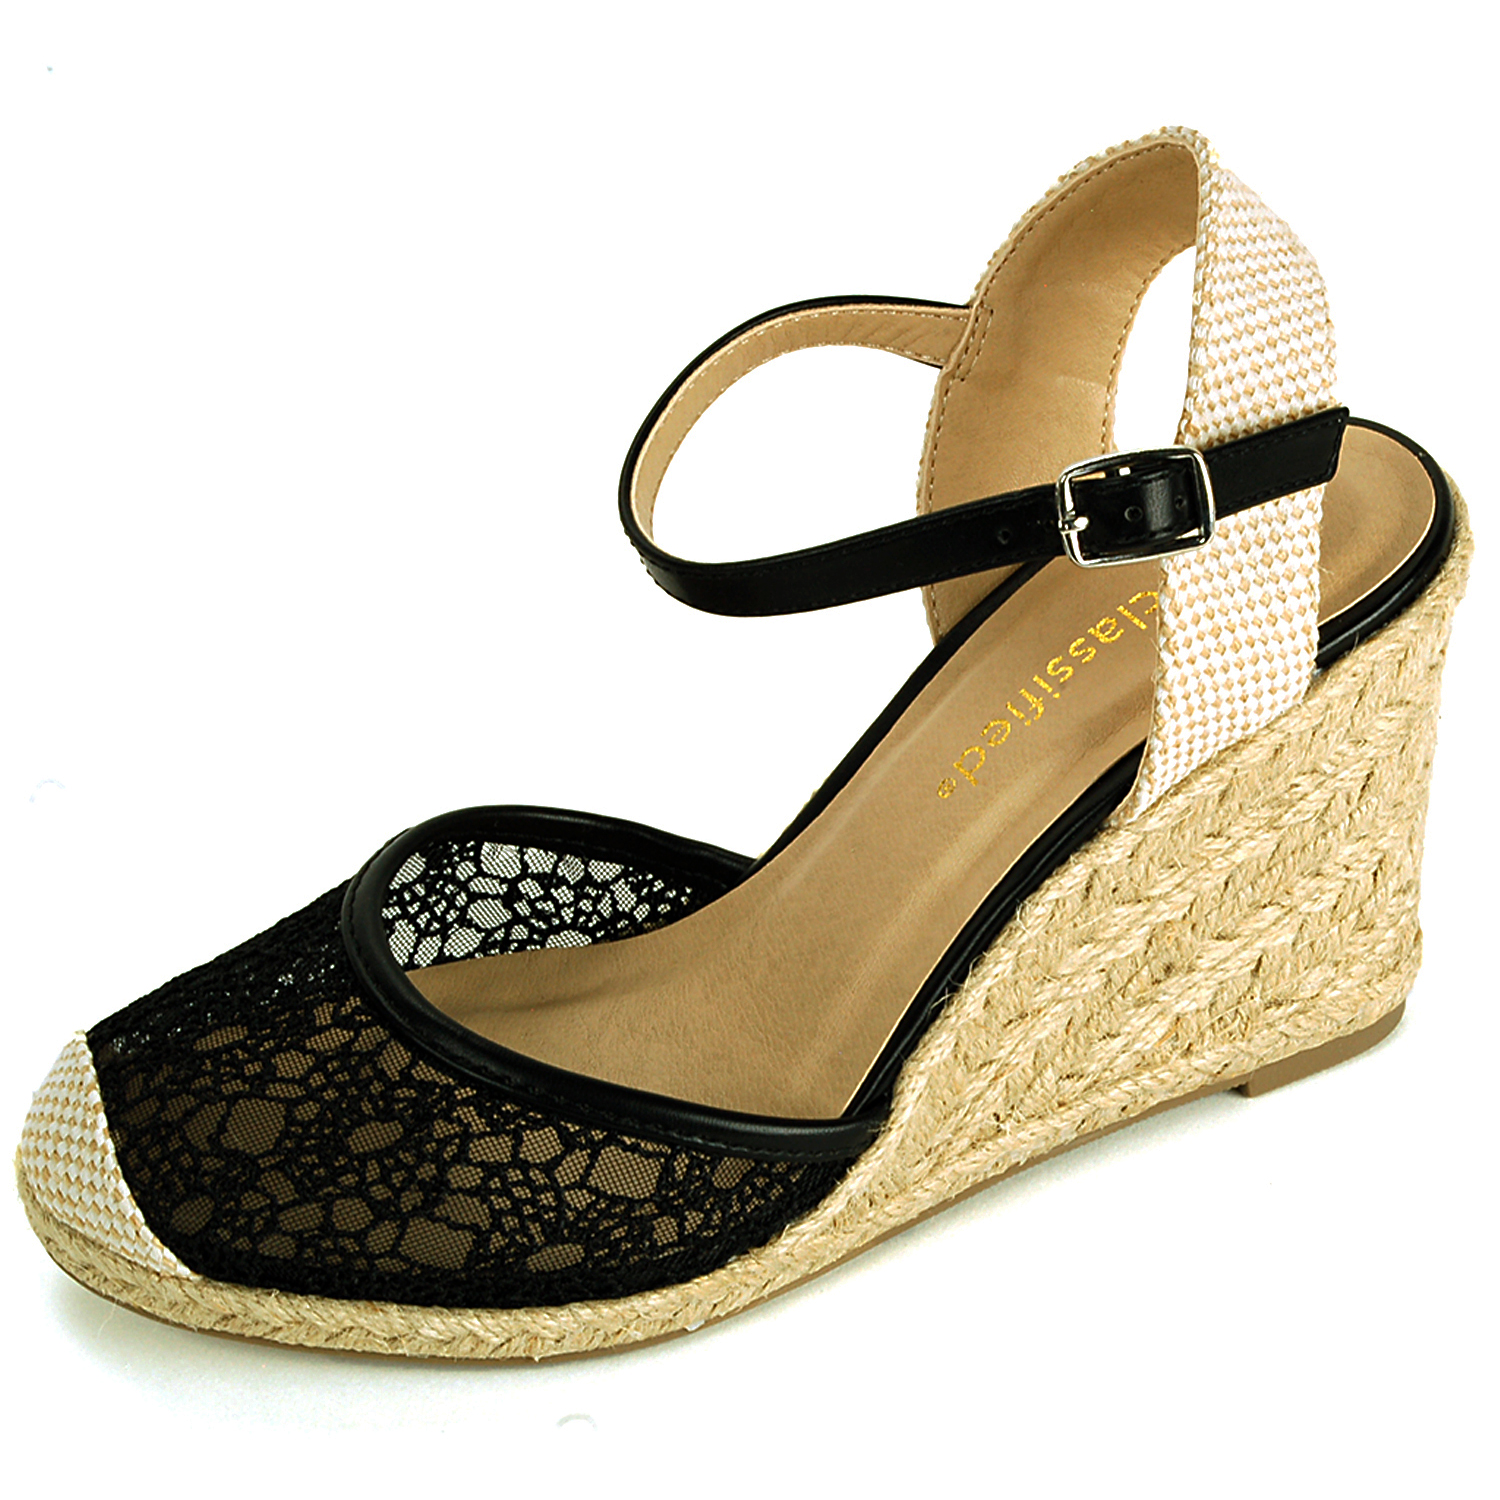 Womens Wedge Heels Platform Shoes Braided Wicker Lace Design Ankle Strap Sandals Black Size 8.5